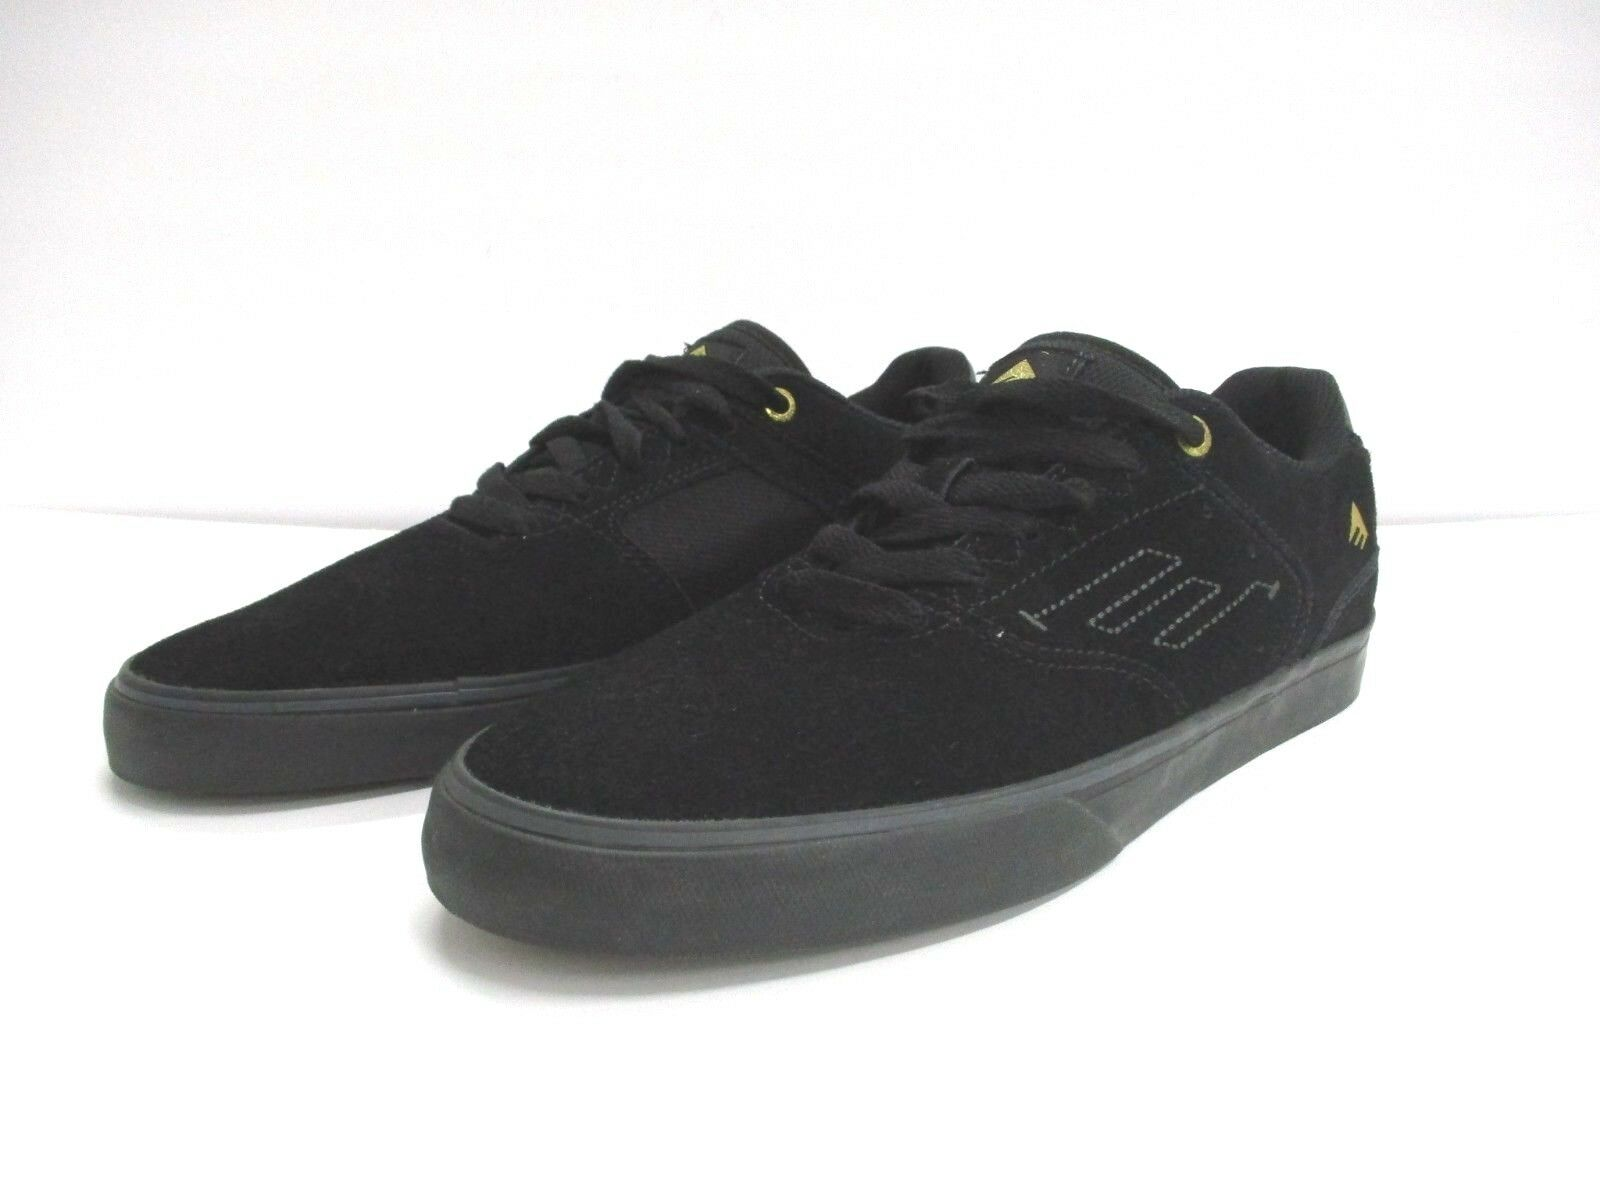 New Men's Emerica The Reynolds Low Vulc Size 8 NEW